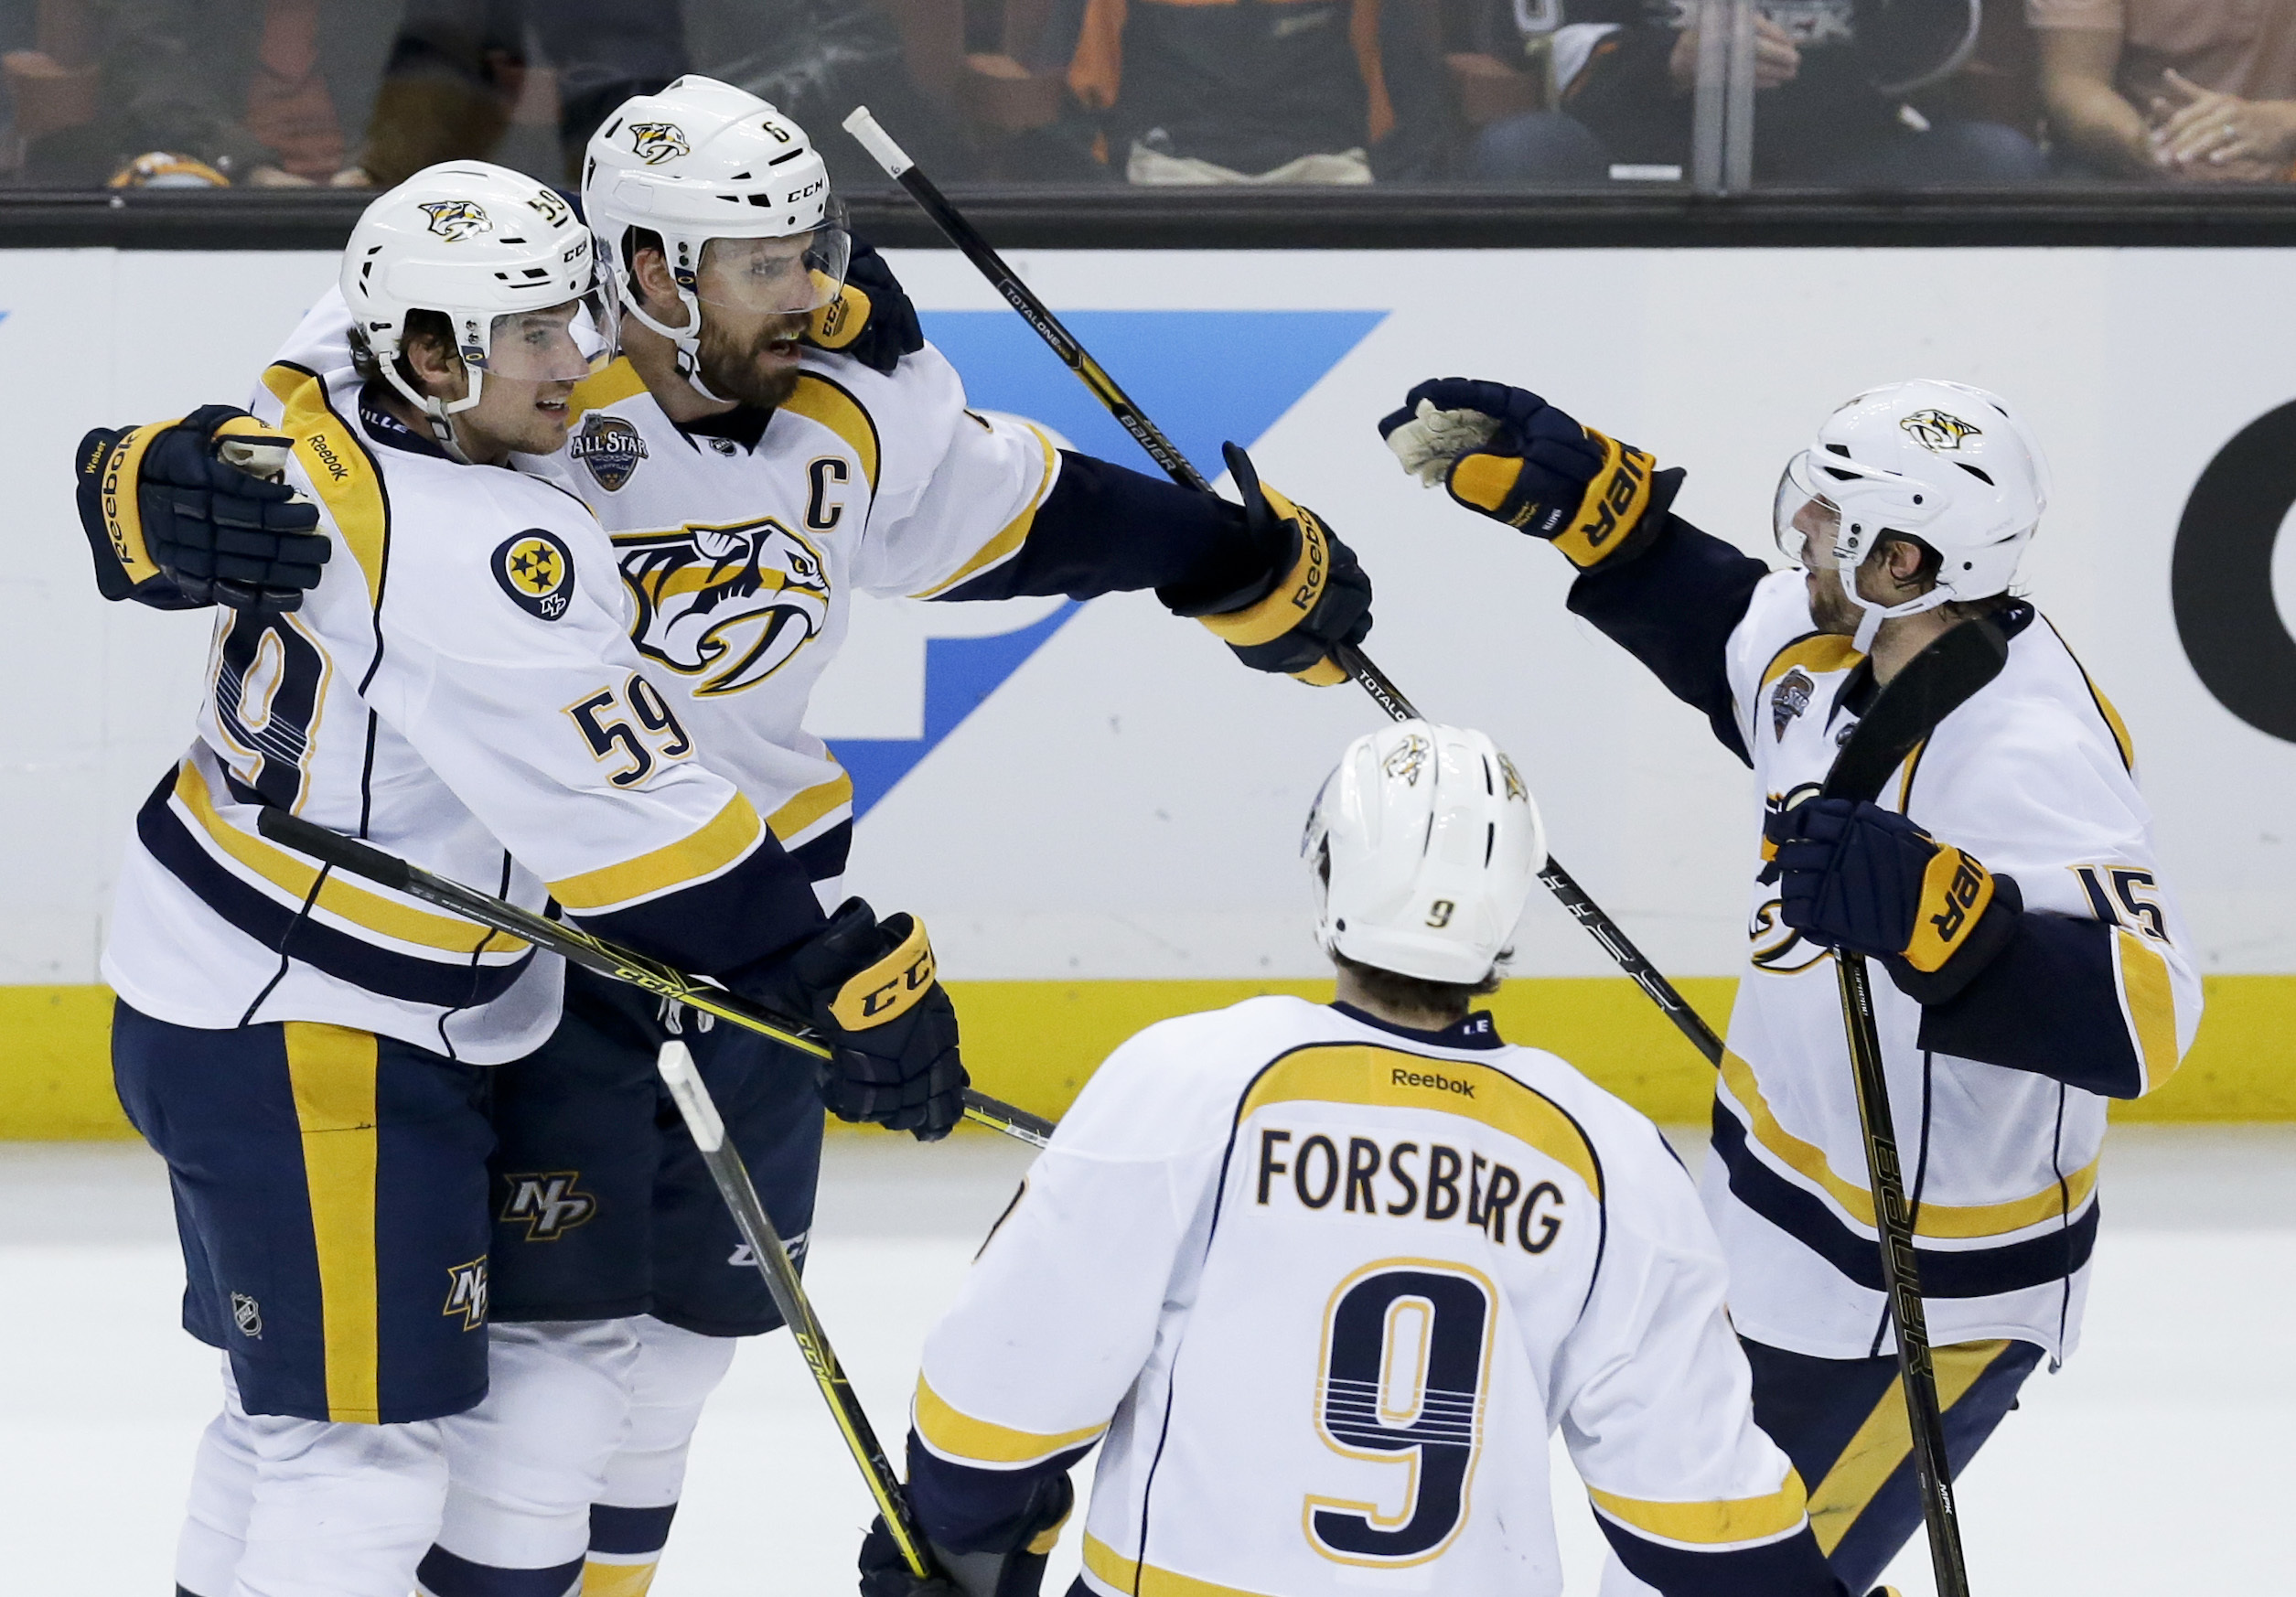 Nashville Predators defenseman Shea Weber (6) celebrates after scoring with teammates during the second period of Game 2 of an NHL hockey first-round Stanley Cup playoff series against the Anaheim Ducks in Anaheim, Calif., Sunday, April 17, 2016. (AP Phot